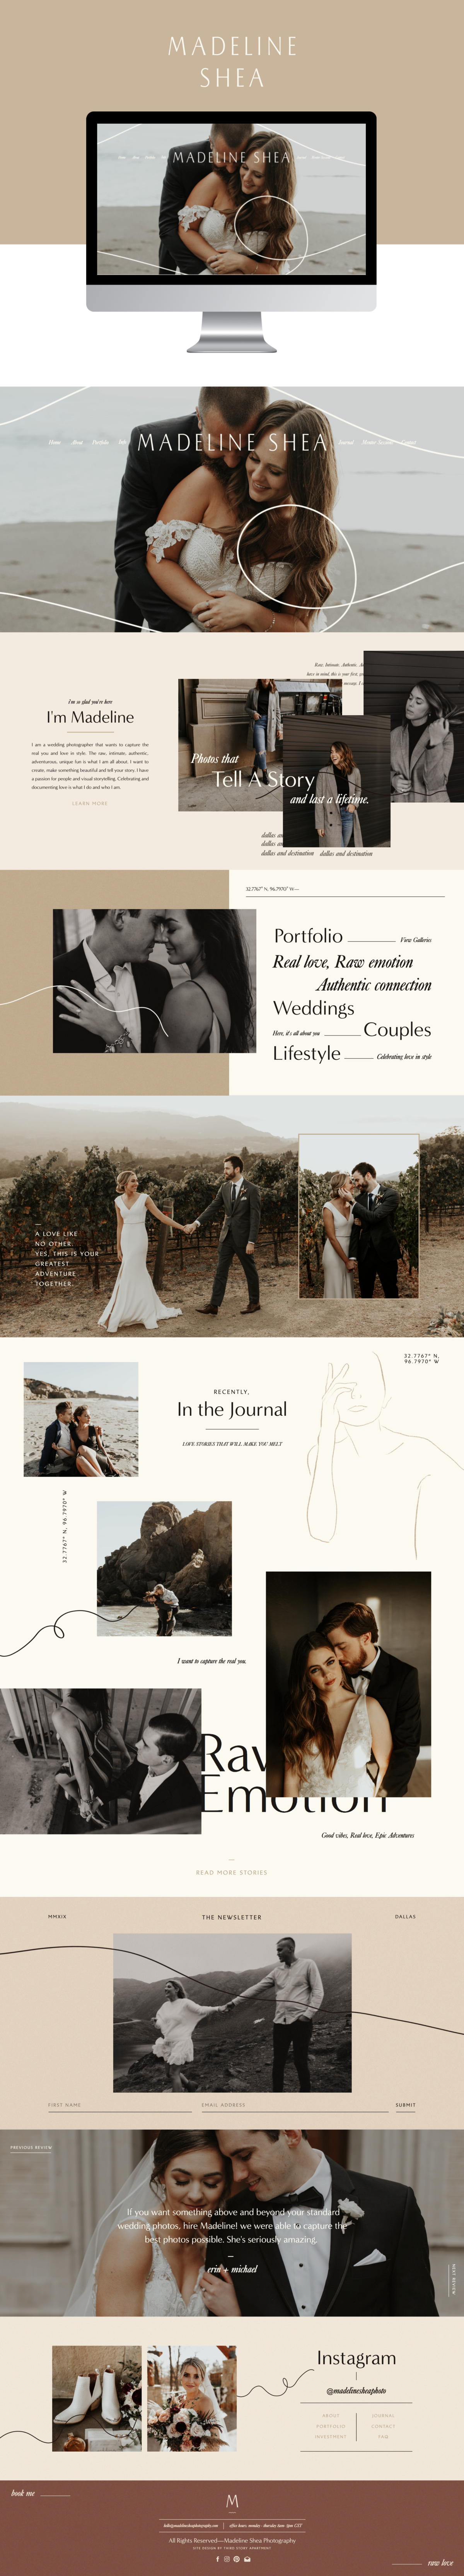 ThirdStory-Template-Desktop-And-Layout-MadelineShea